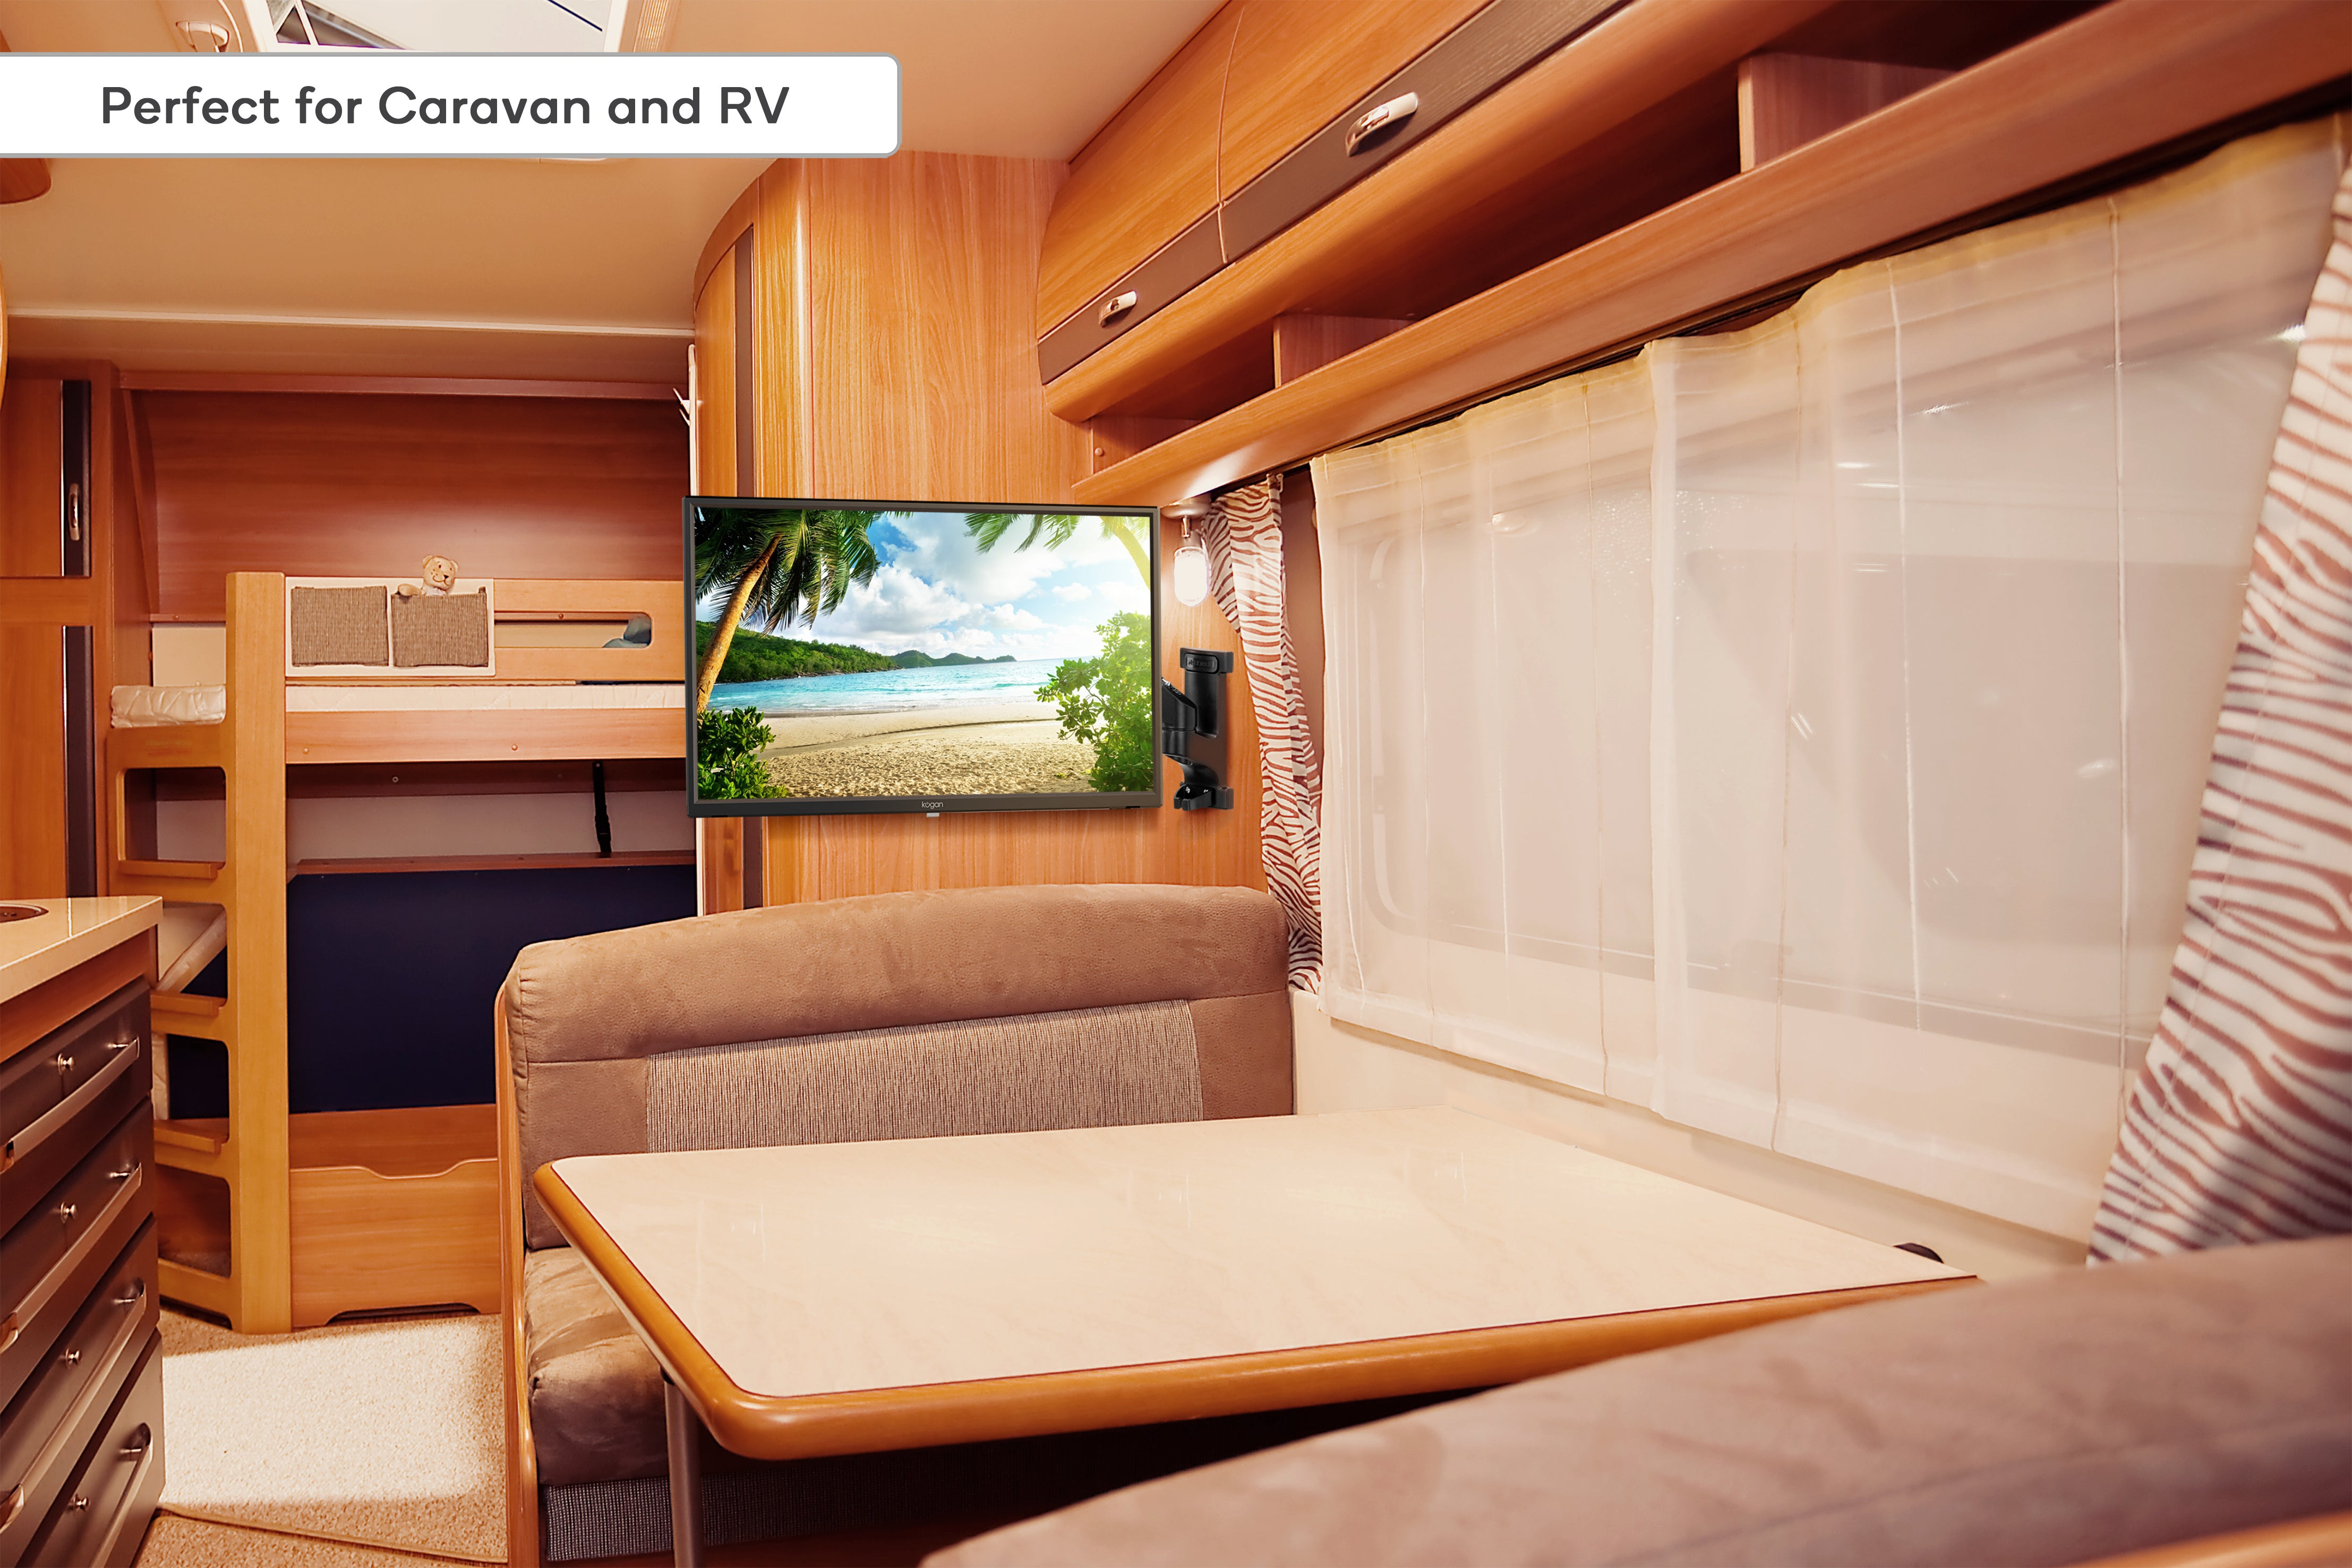 Perfect for Caravan and RV